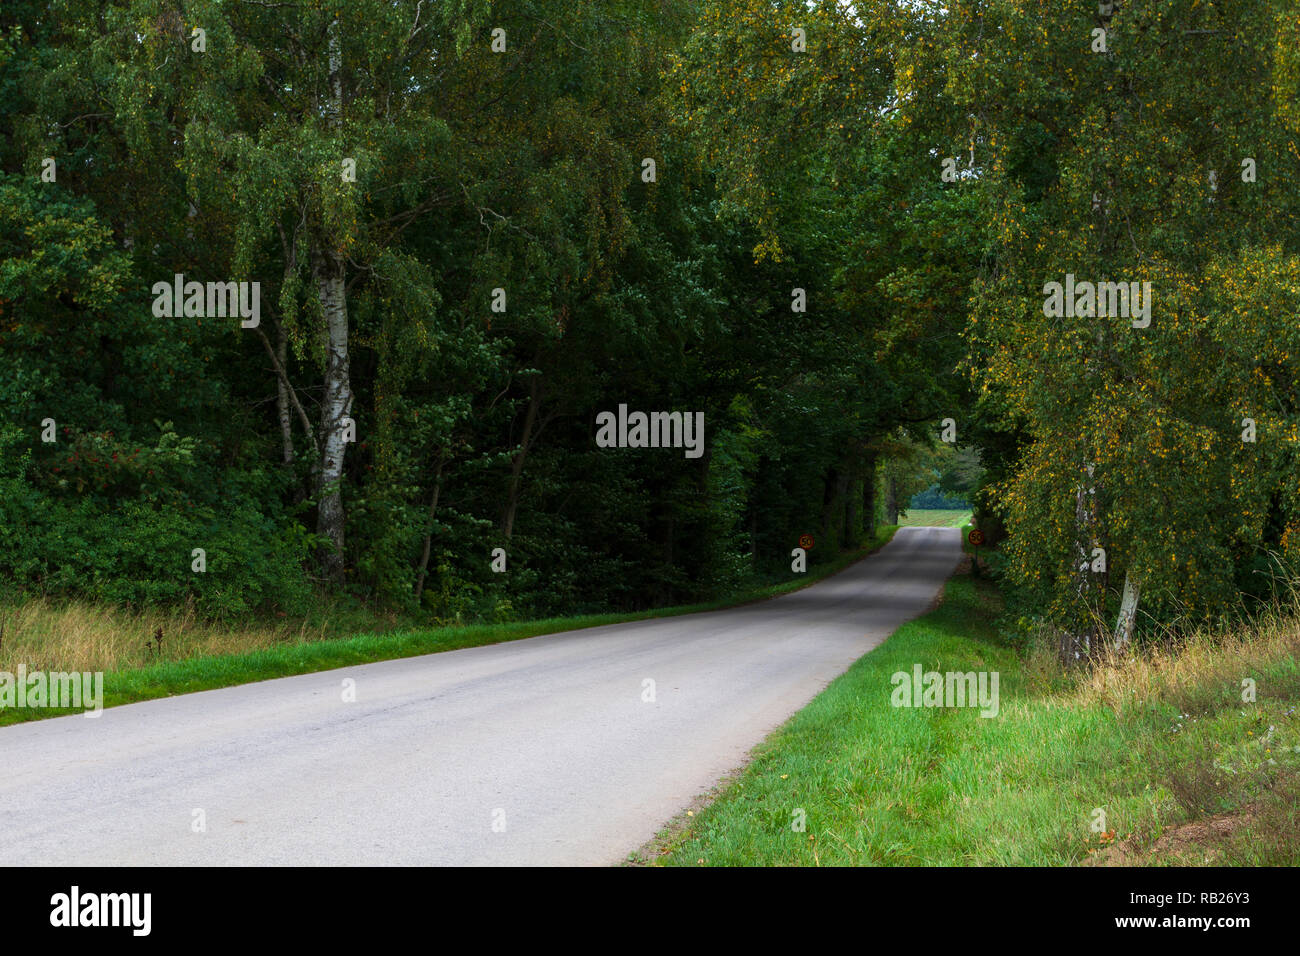 A road through deciduous forest - Stock Image